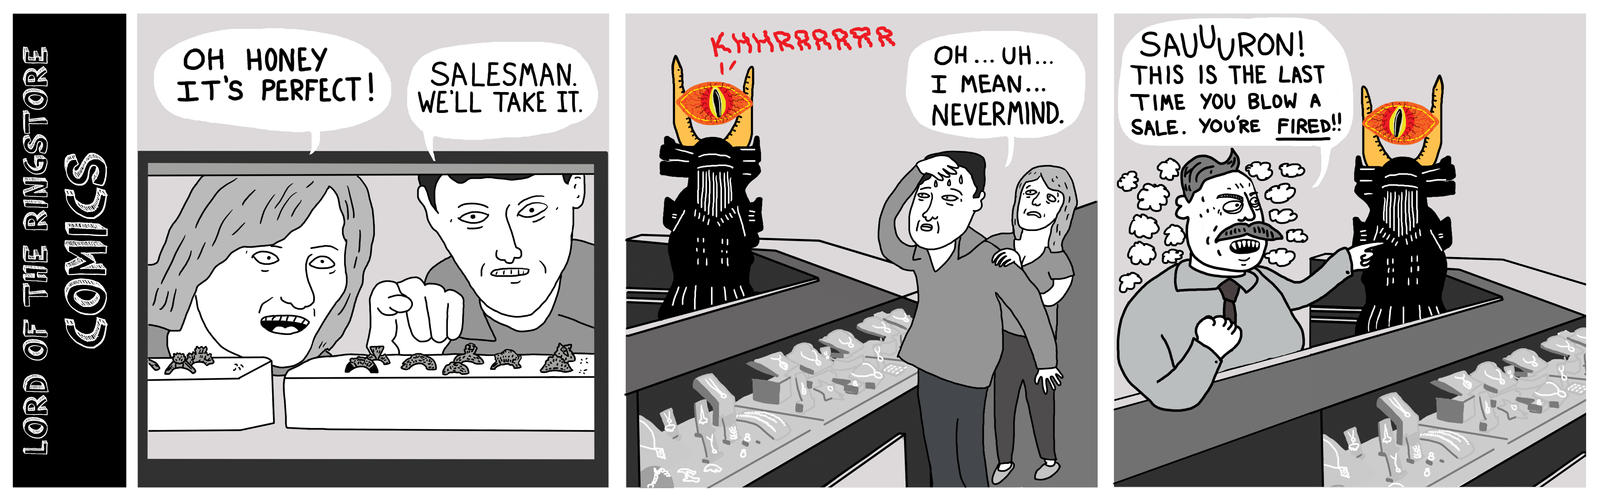 Lord of the Ringstore Comics